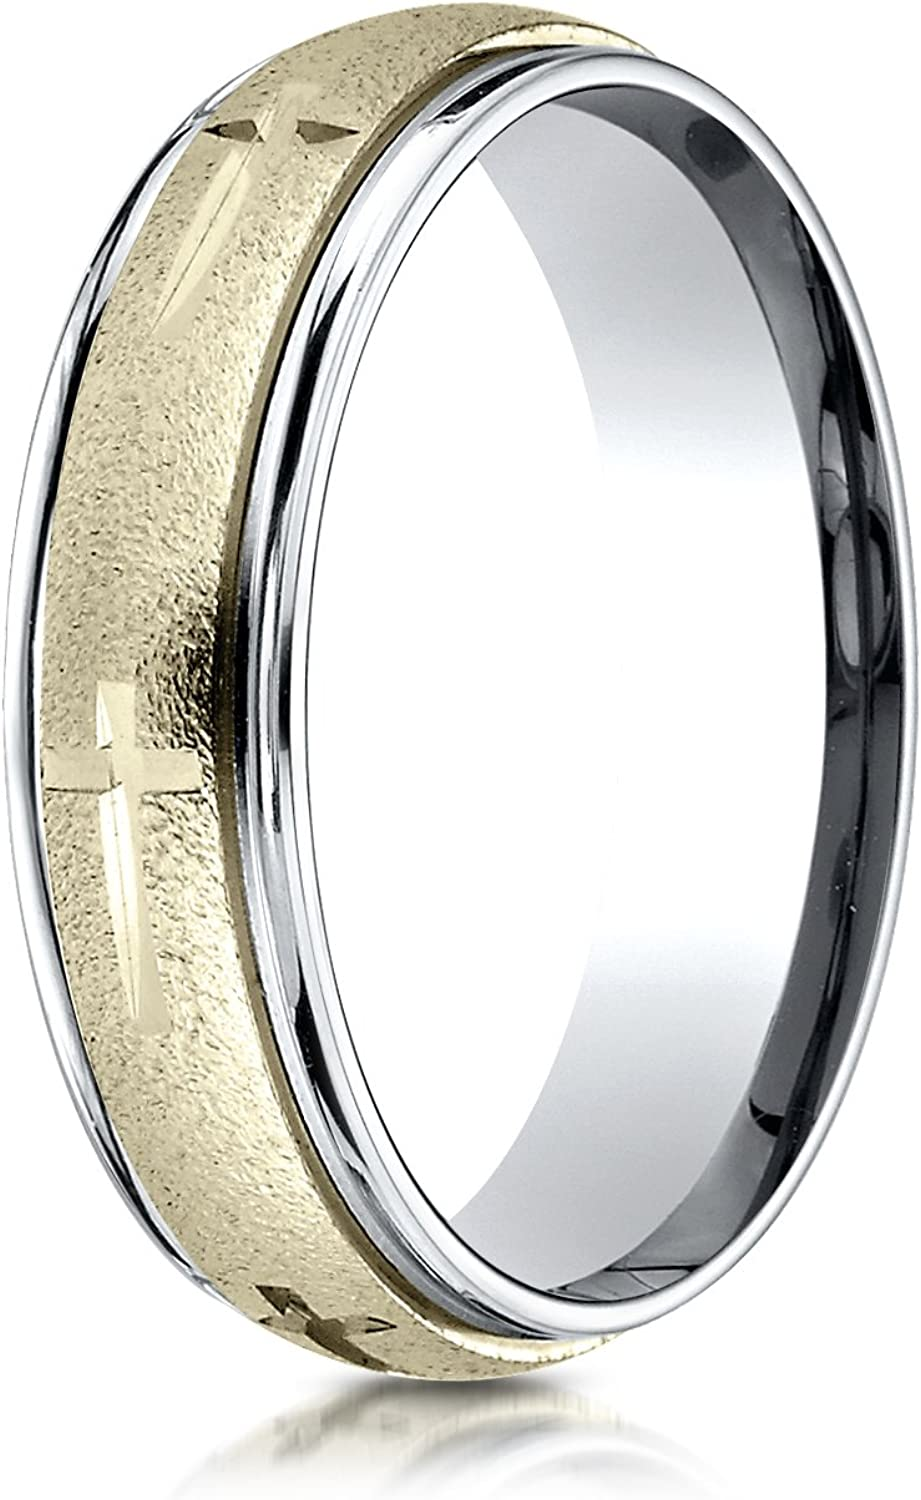 PriceRock 10K Yellow Gold 6mm Slightly Domed Standard Comfort-Fit Wedding Band Ring for Men /& Women Size 4 to 15